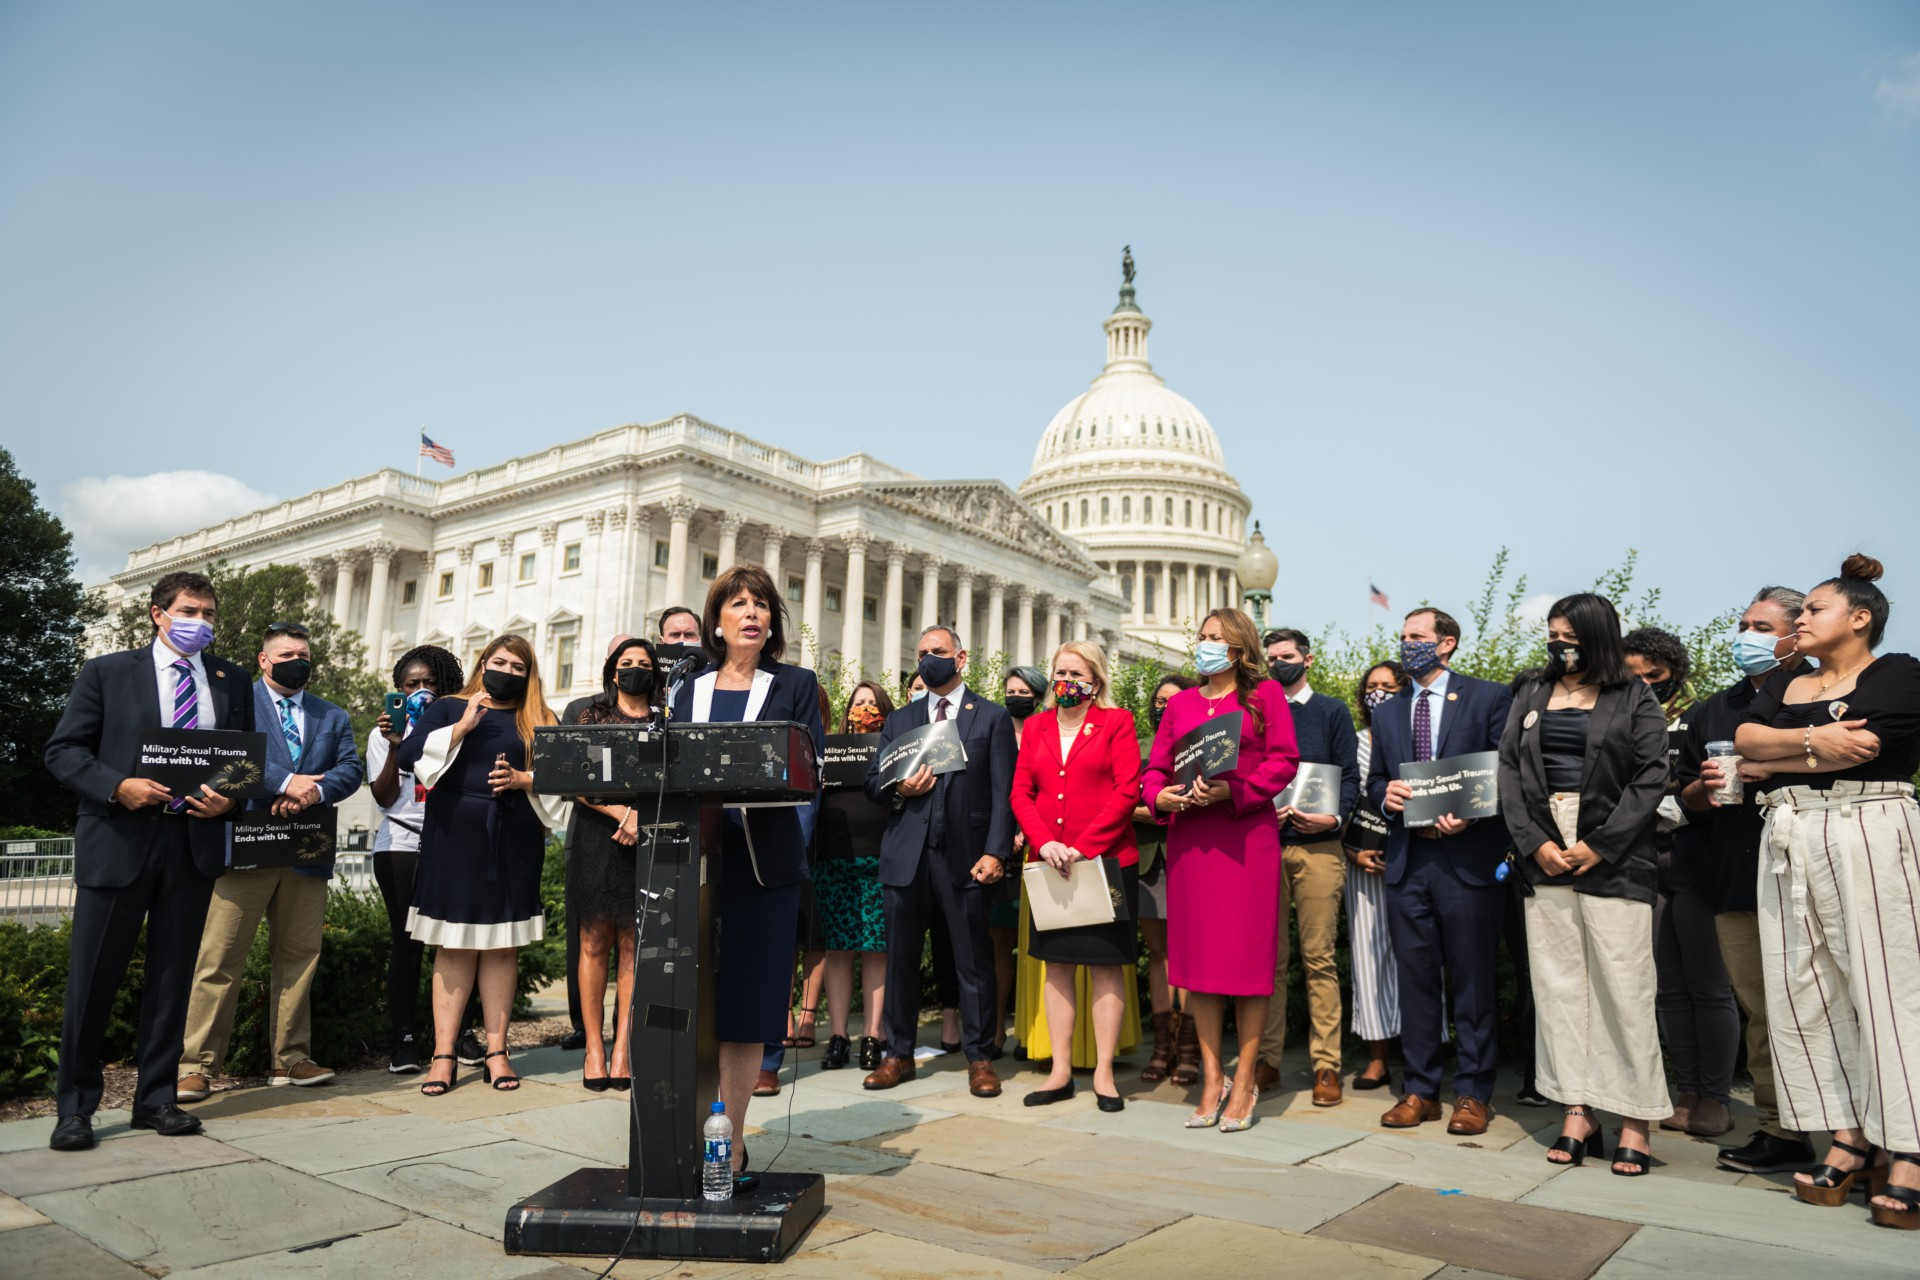 Caption: Accompanied by members of Vanessa Guillen's family, Rep. Jackie Speier (D-Cal.) unveils legislation to reform the military's response to sexual harassment and assault., Credit: Rep. Jackie Speier